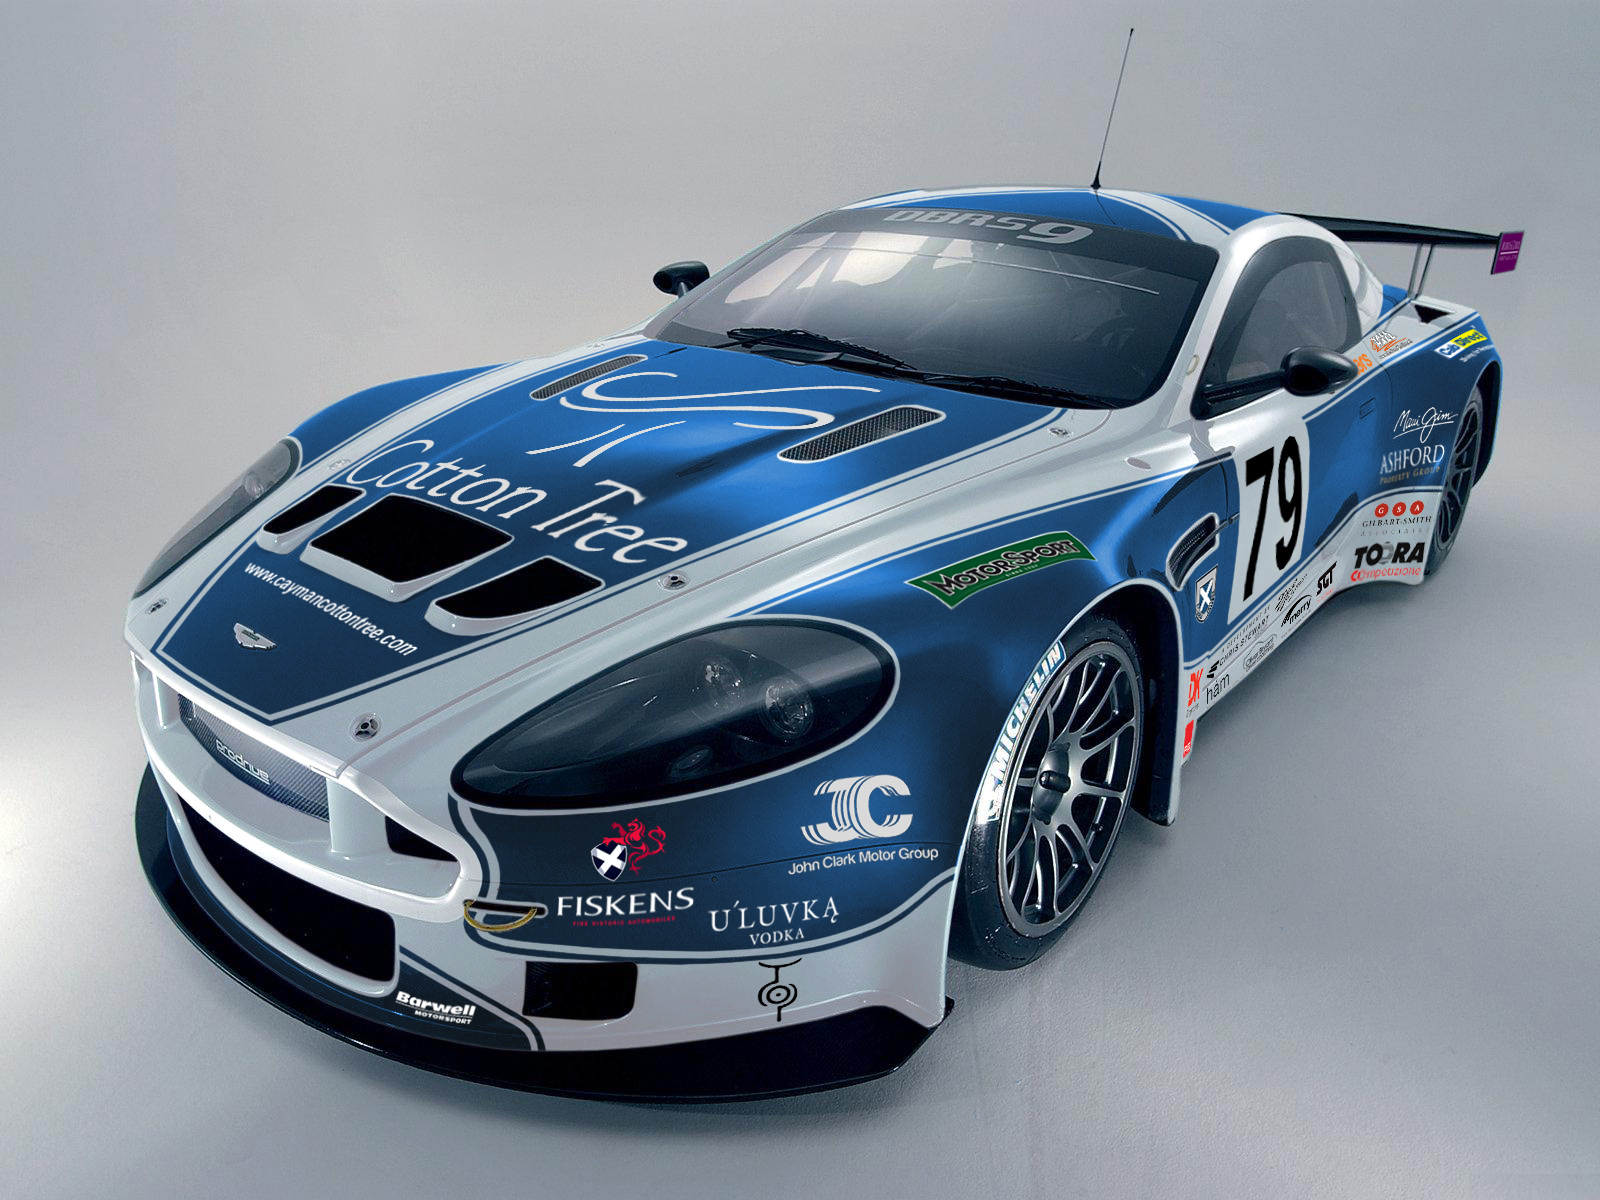 Ecurie Ecosse returns to